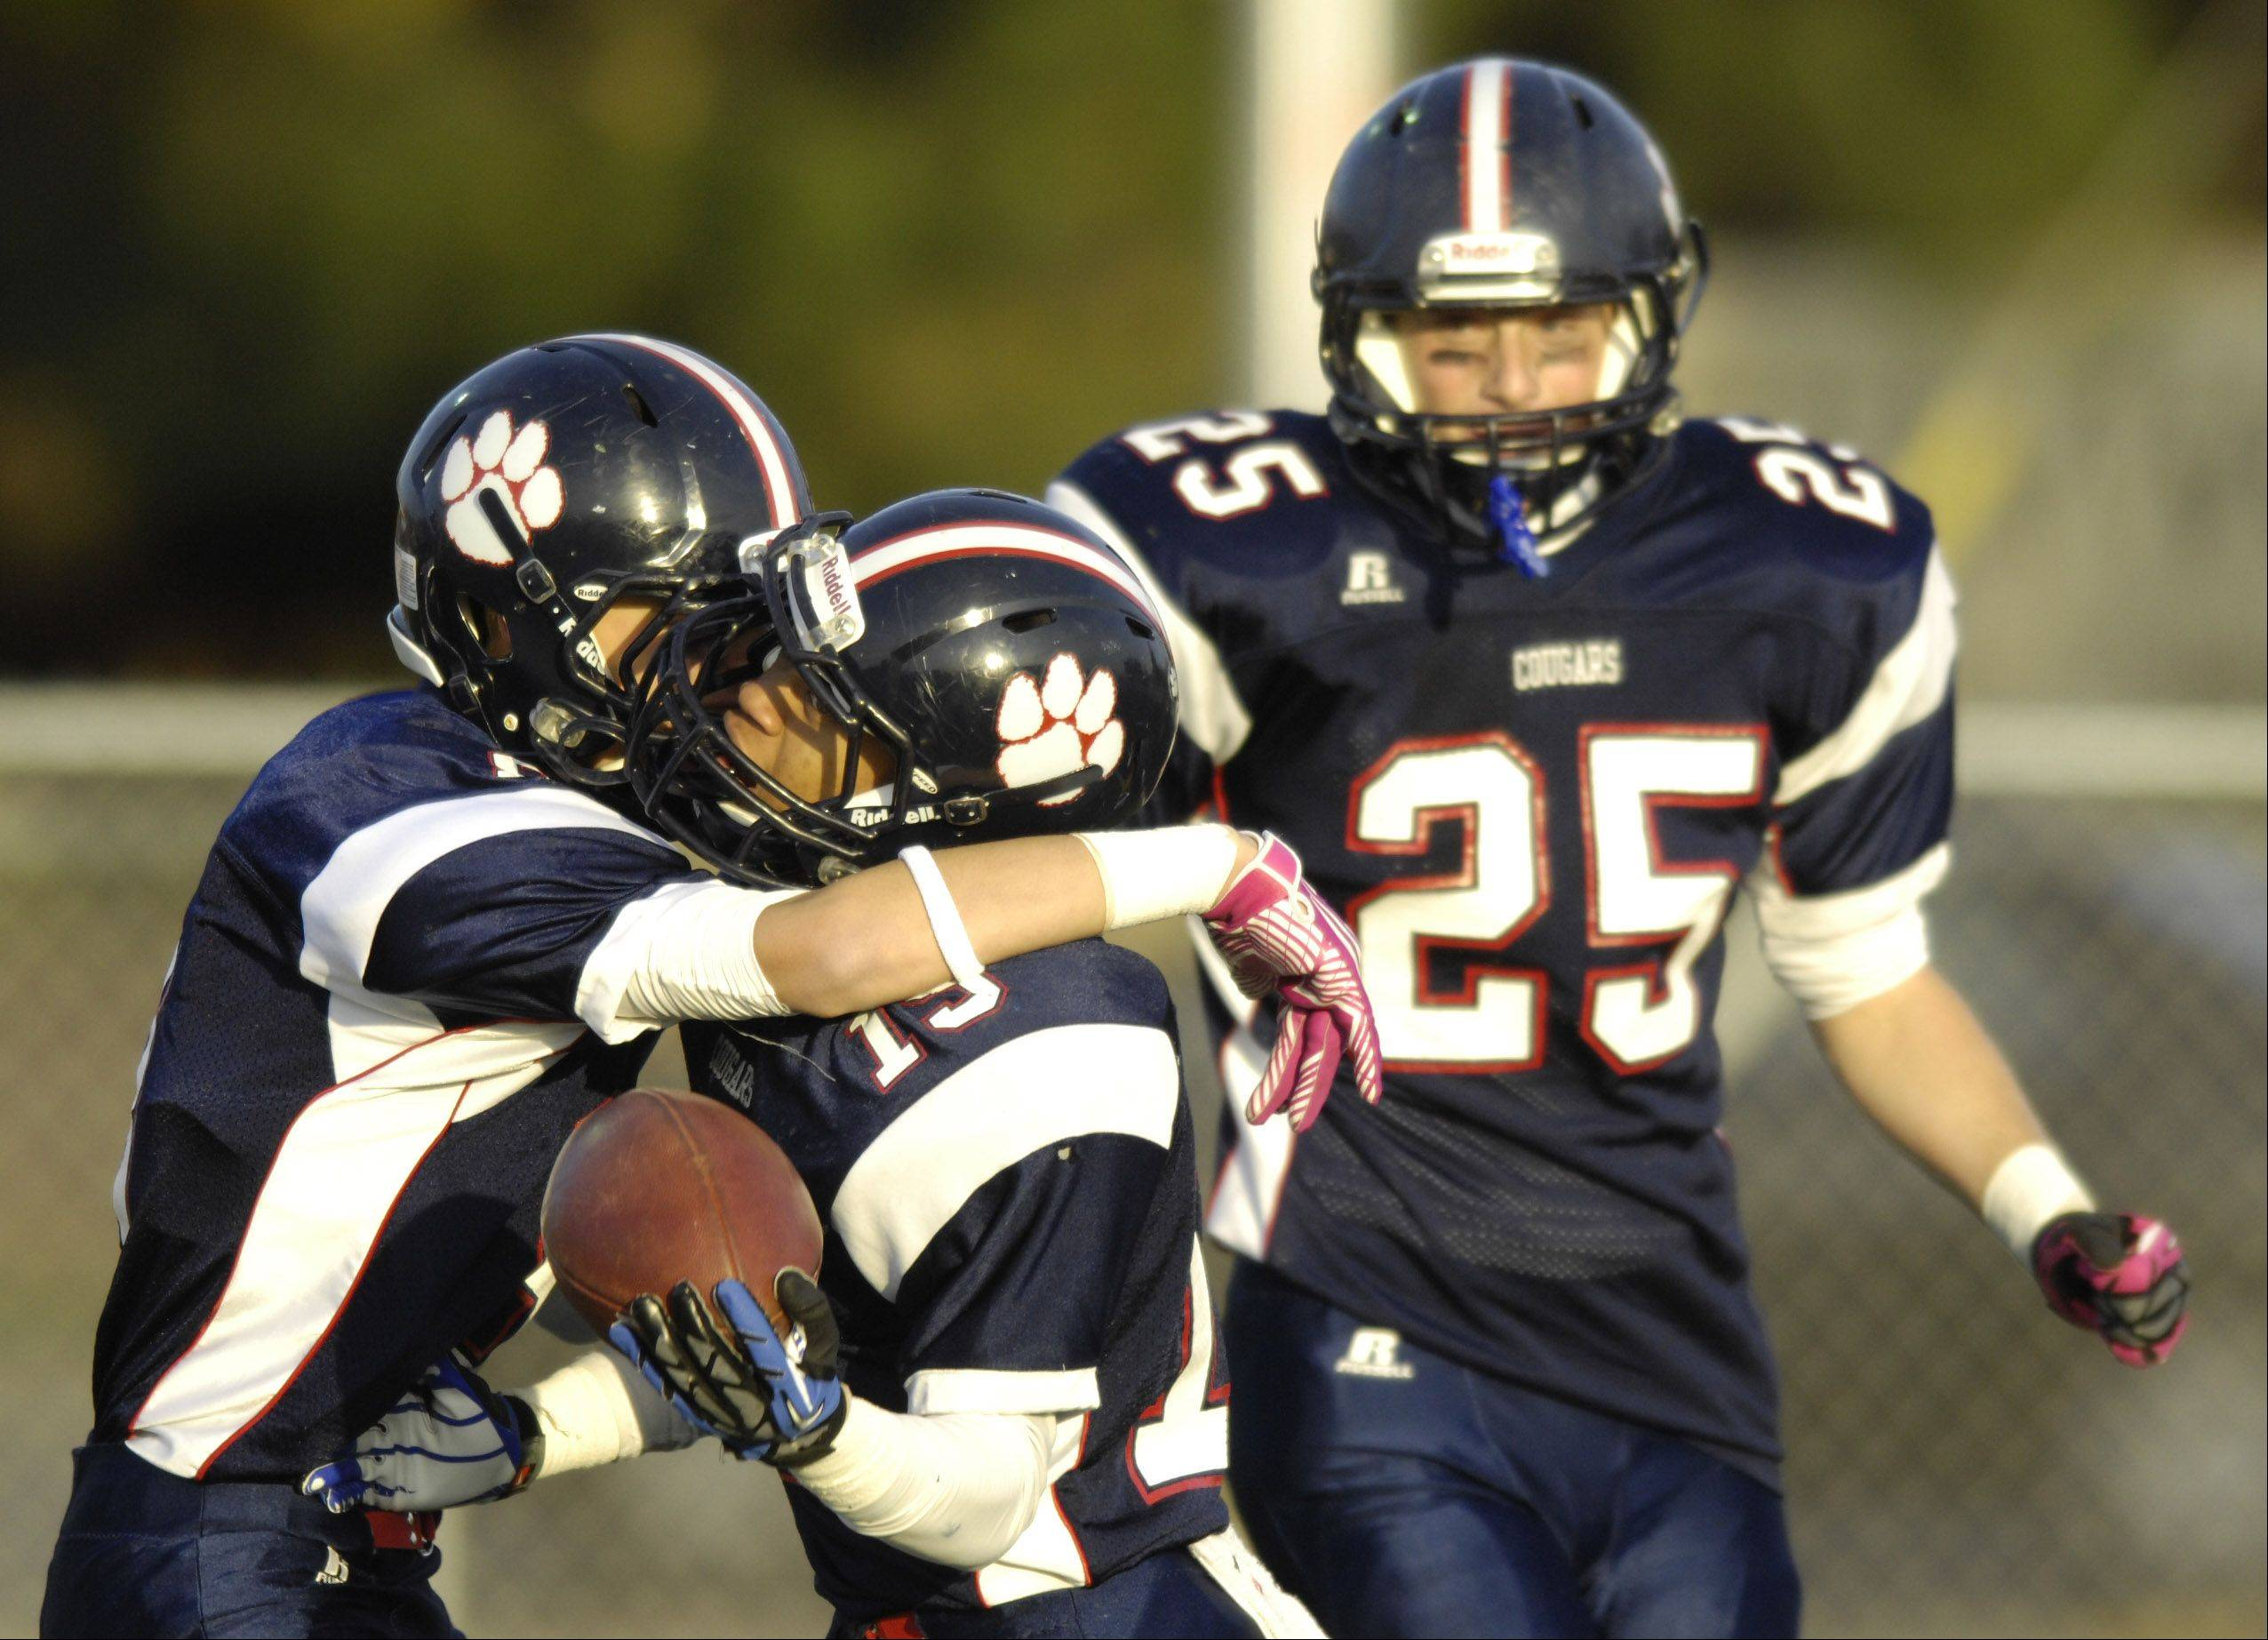 Conant's Bryson Brown, center, celebrates his fourth-quarter touchdown with teammates Zach Smith, left, and Mike Kos during Saturday's 14-0 win over New Trier.